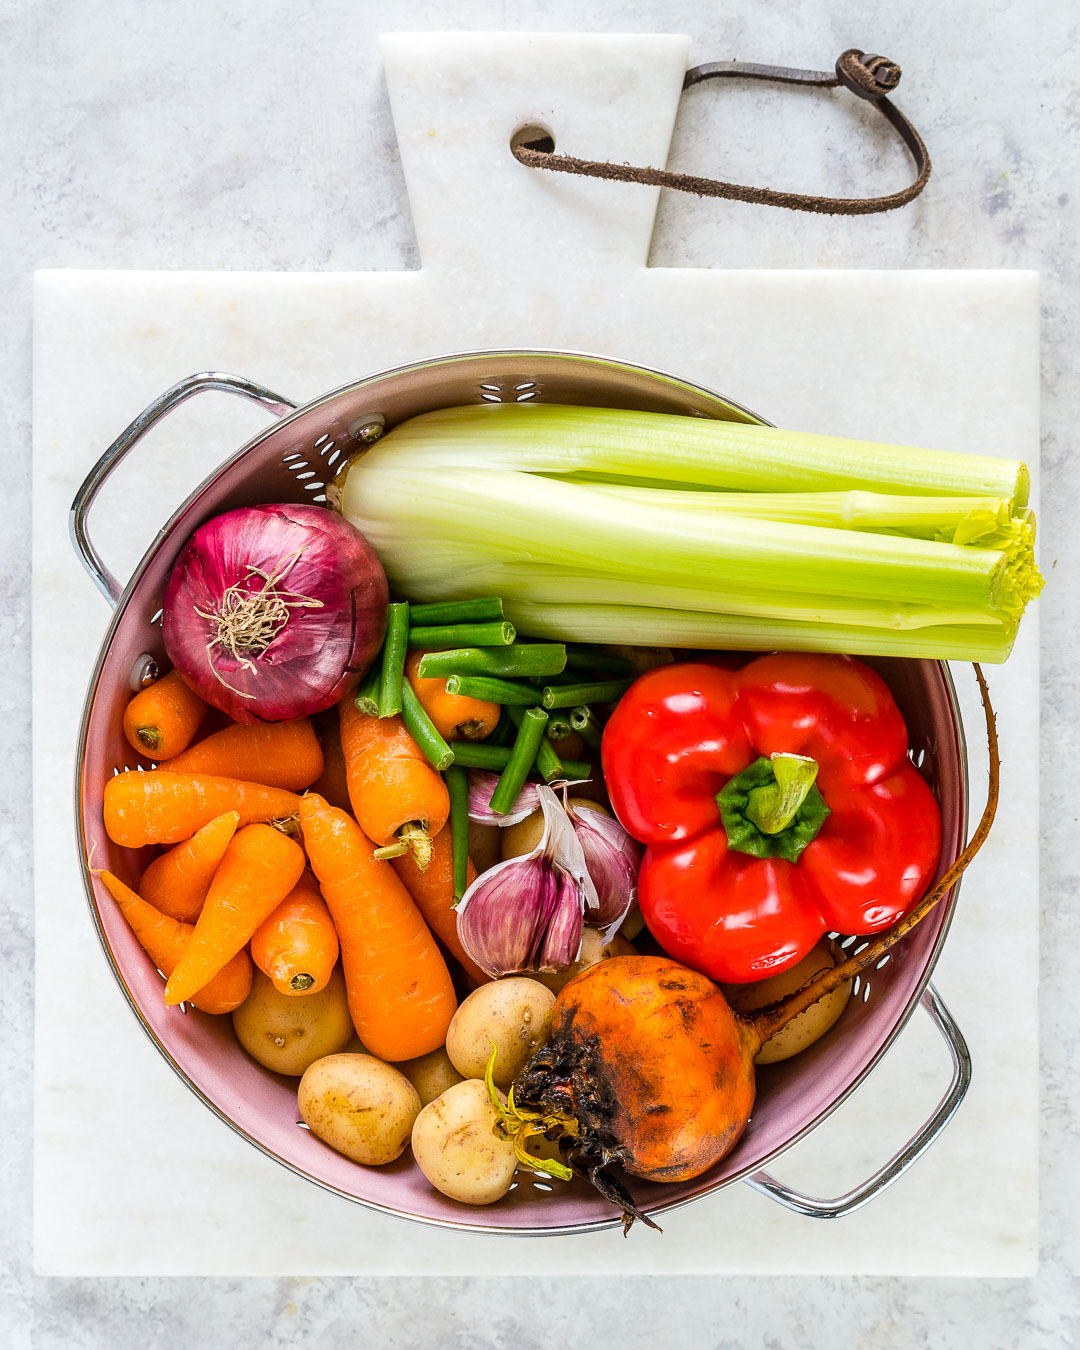 Nourishing Crockpot Vegetable Soup Ingredients